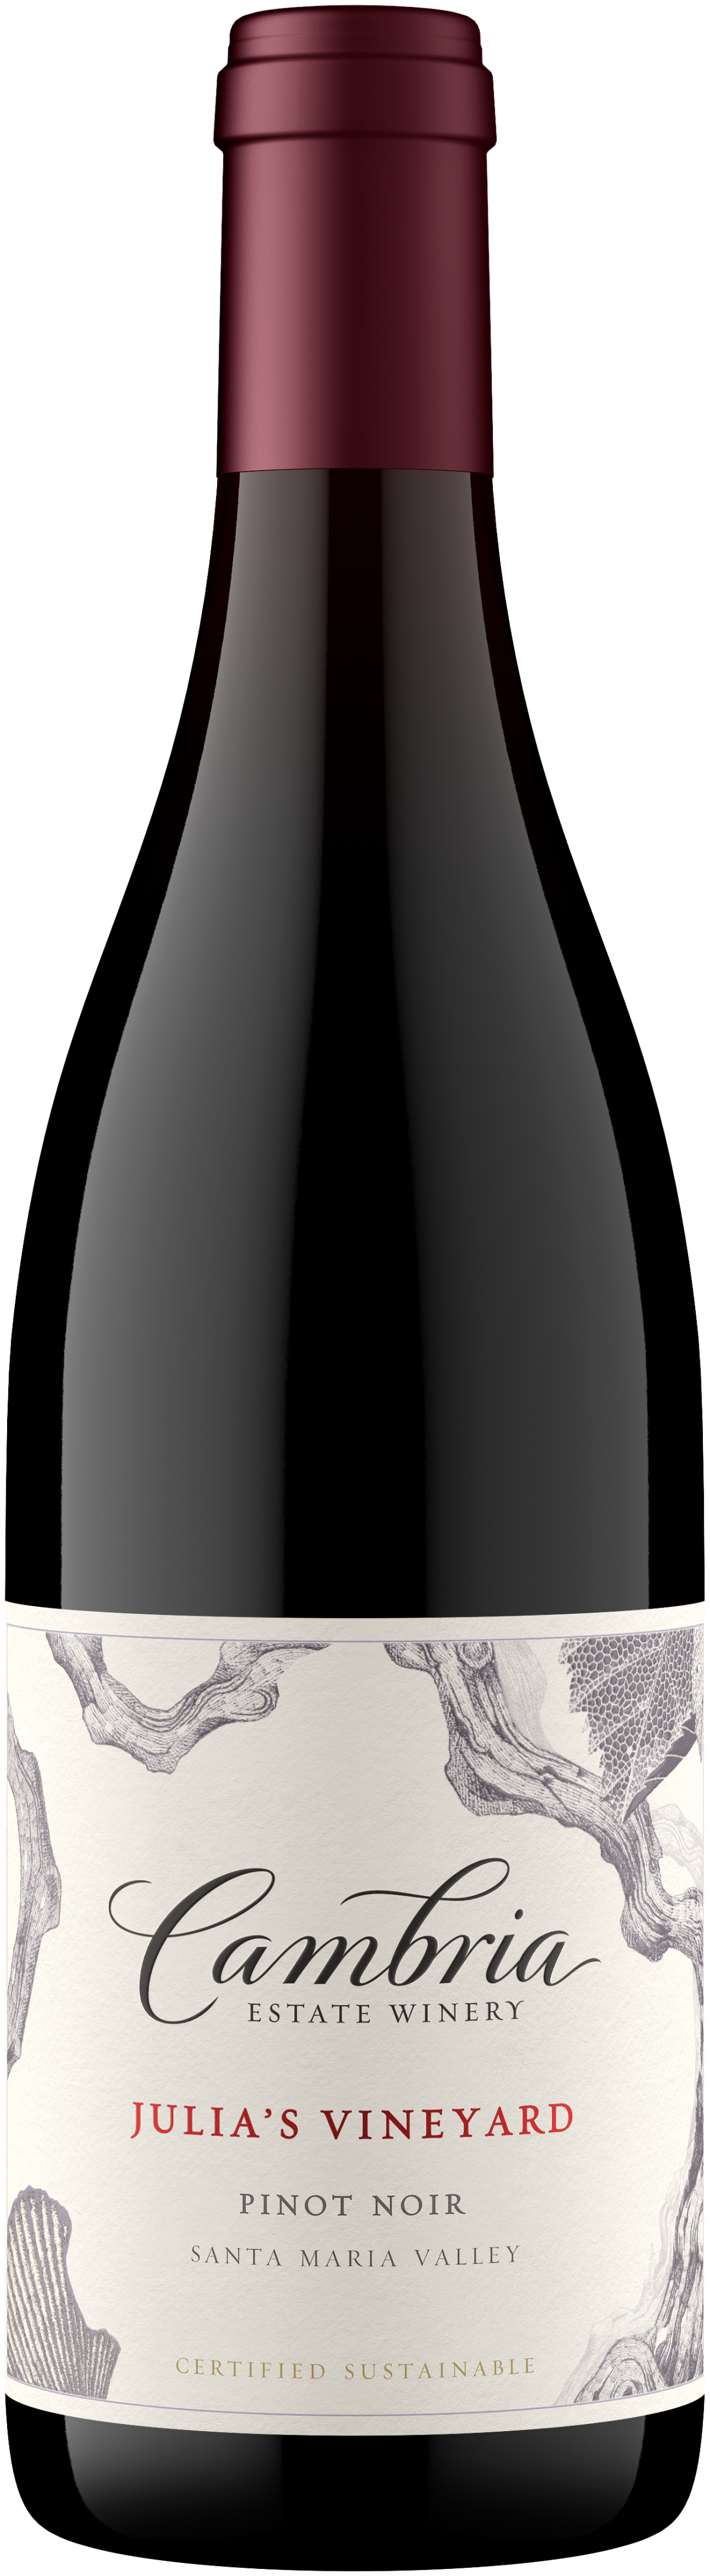 Pinot Noir wine bottle